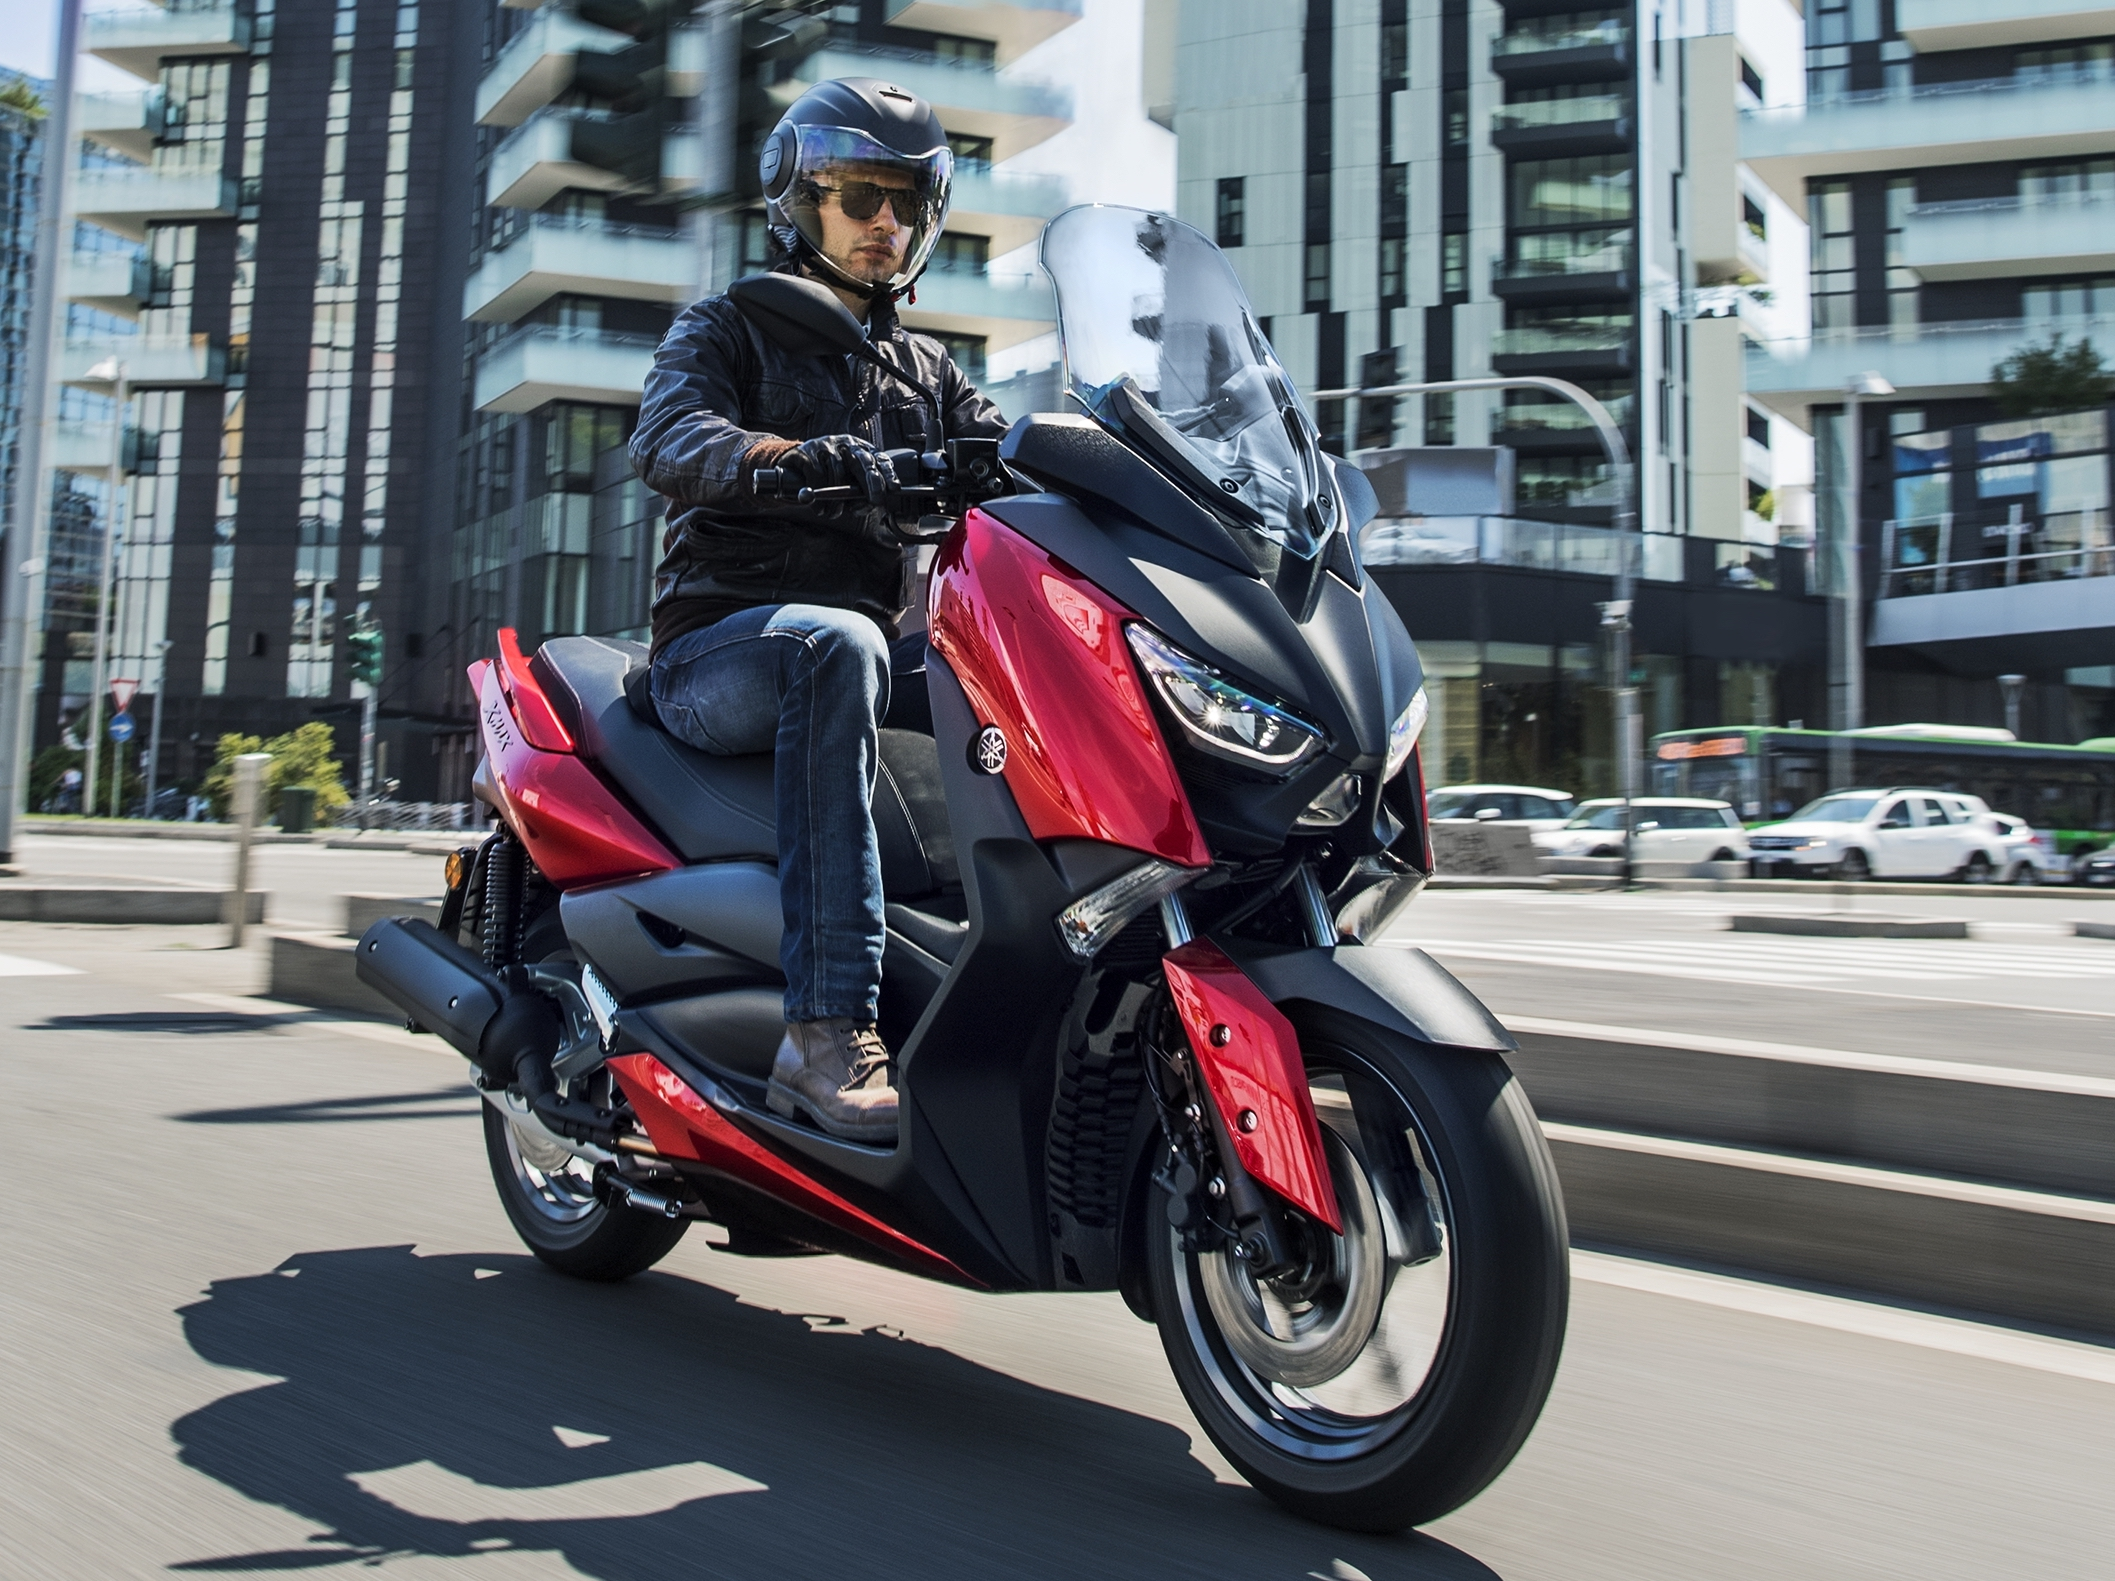 2018 yamaha x max 125 scooter released in europe image 709942. Black Bedroom Furniture Sets. Home Design Ideas